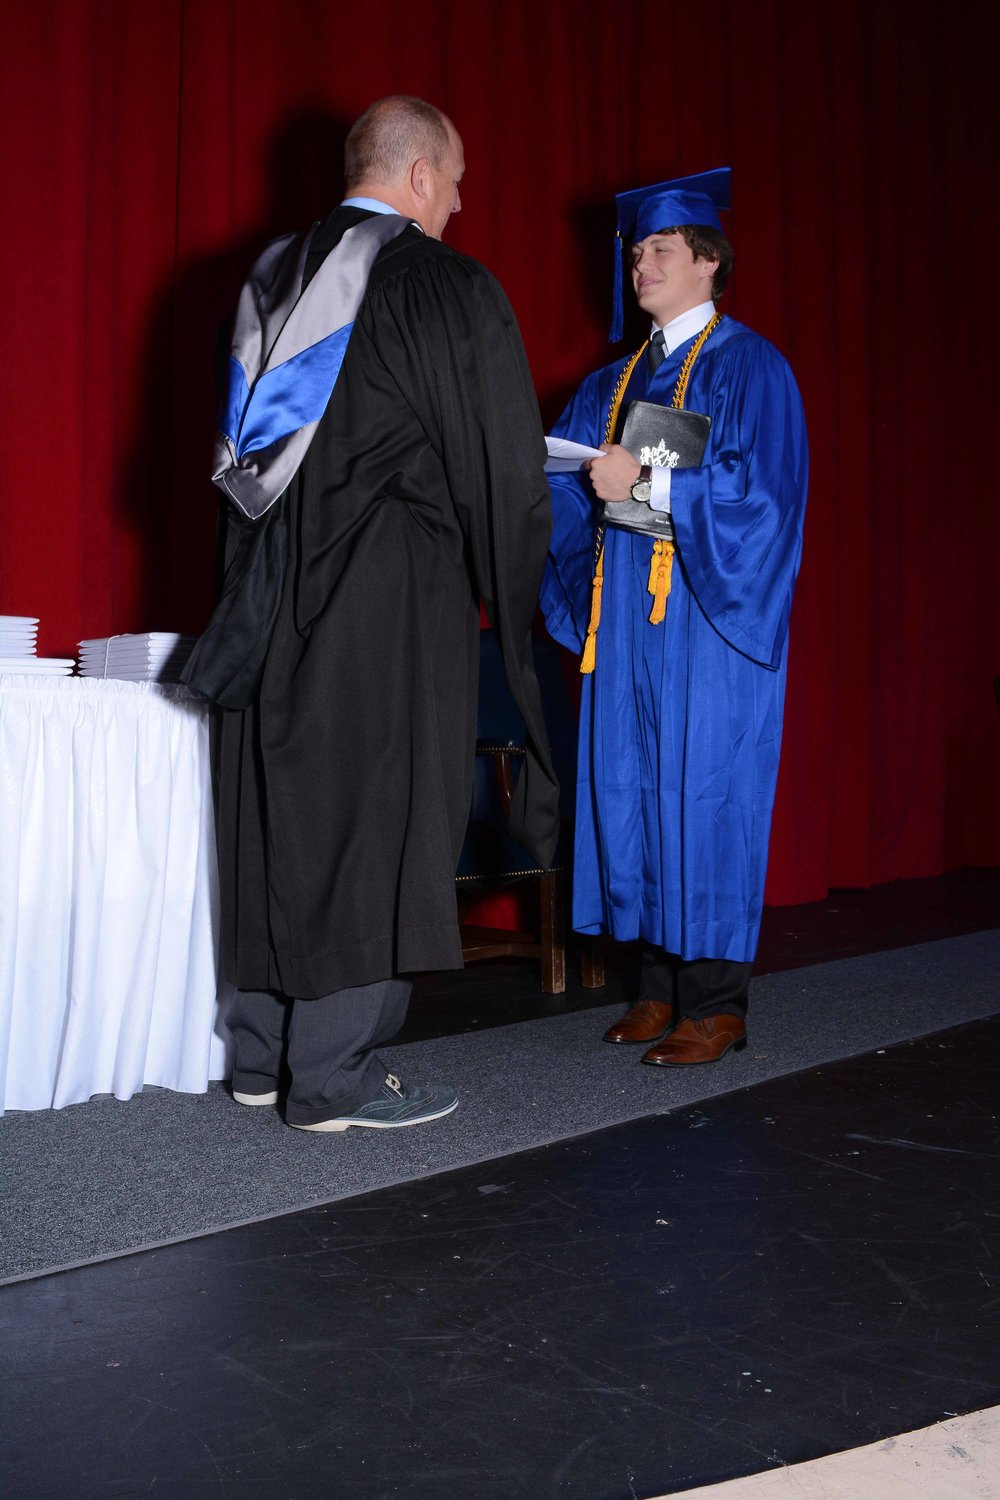 May14 Commencement139.jpg